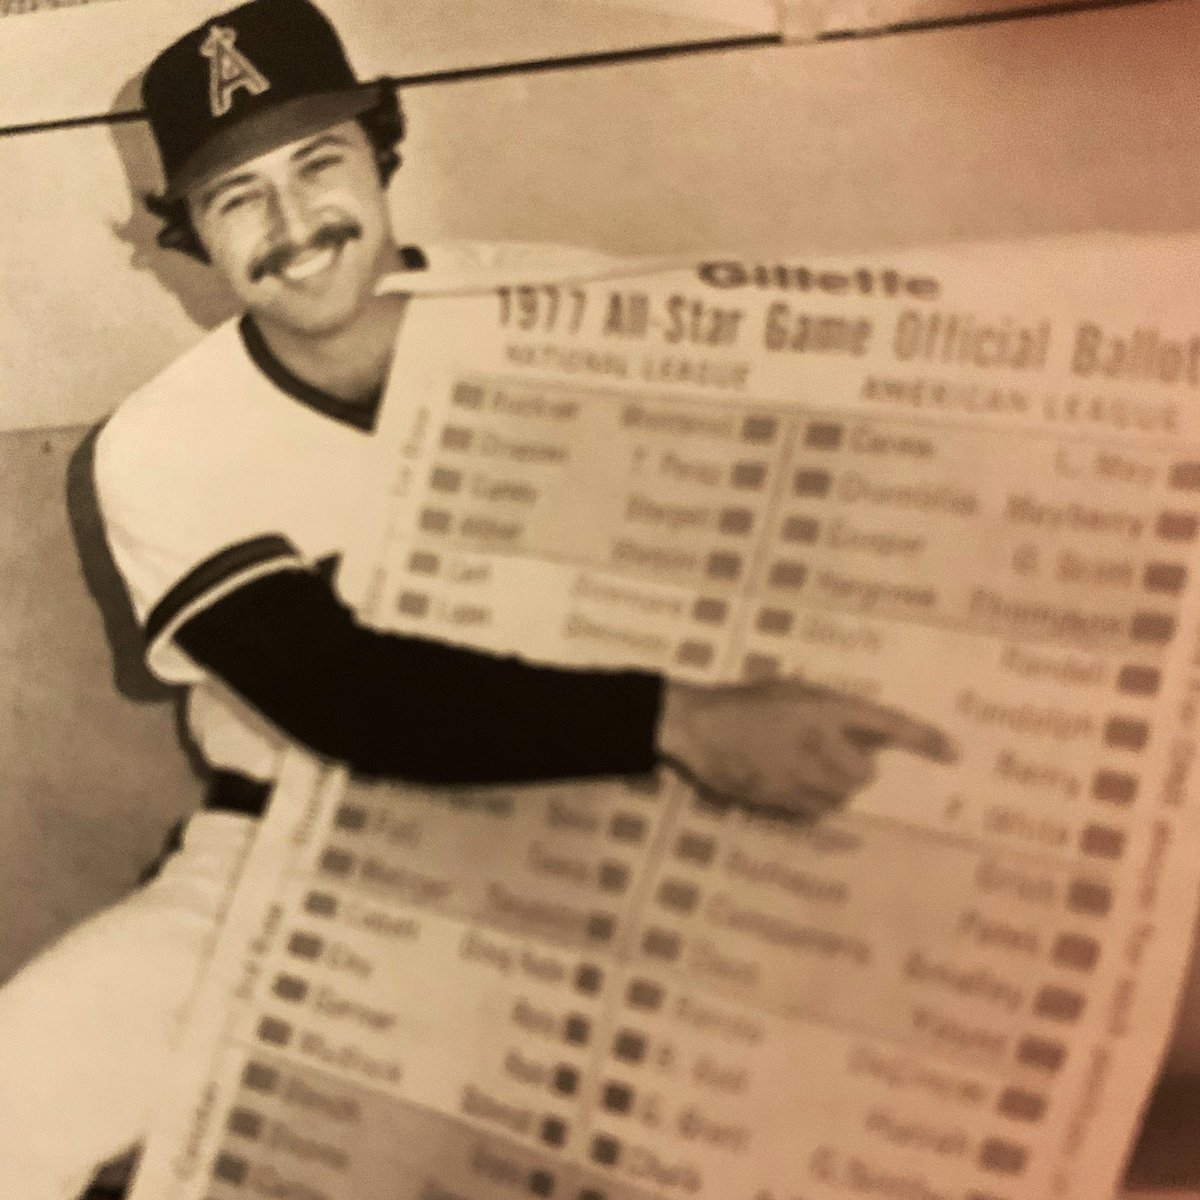 Despite my campaigning in this 1977 publicity shot for the  Angels, I didn't quite get enough votes to make the All-Star team that year, but I was chosen in 1978 in my first year with the Red Sox.  https://t.co/pCyLzJt0uu https://t.co/YdDo7TBRru